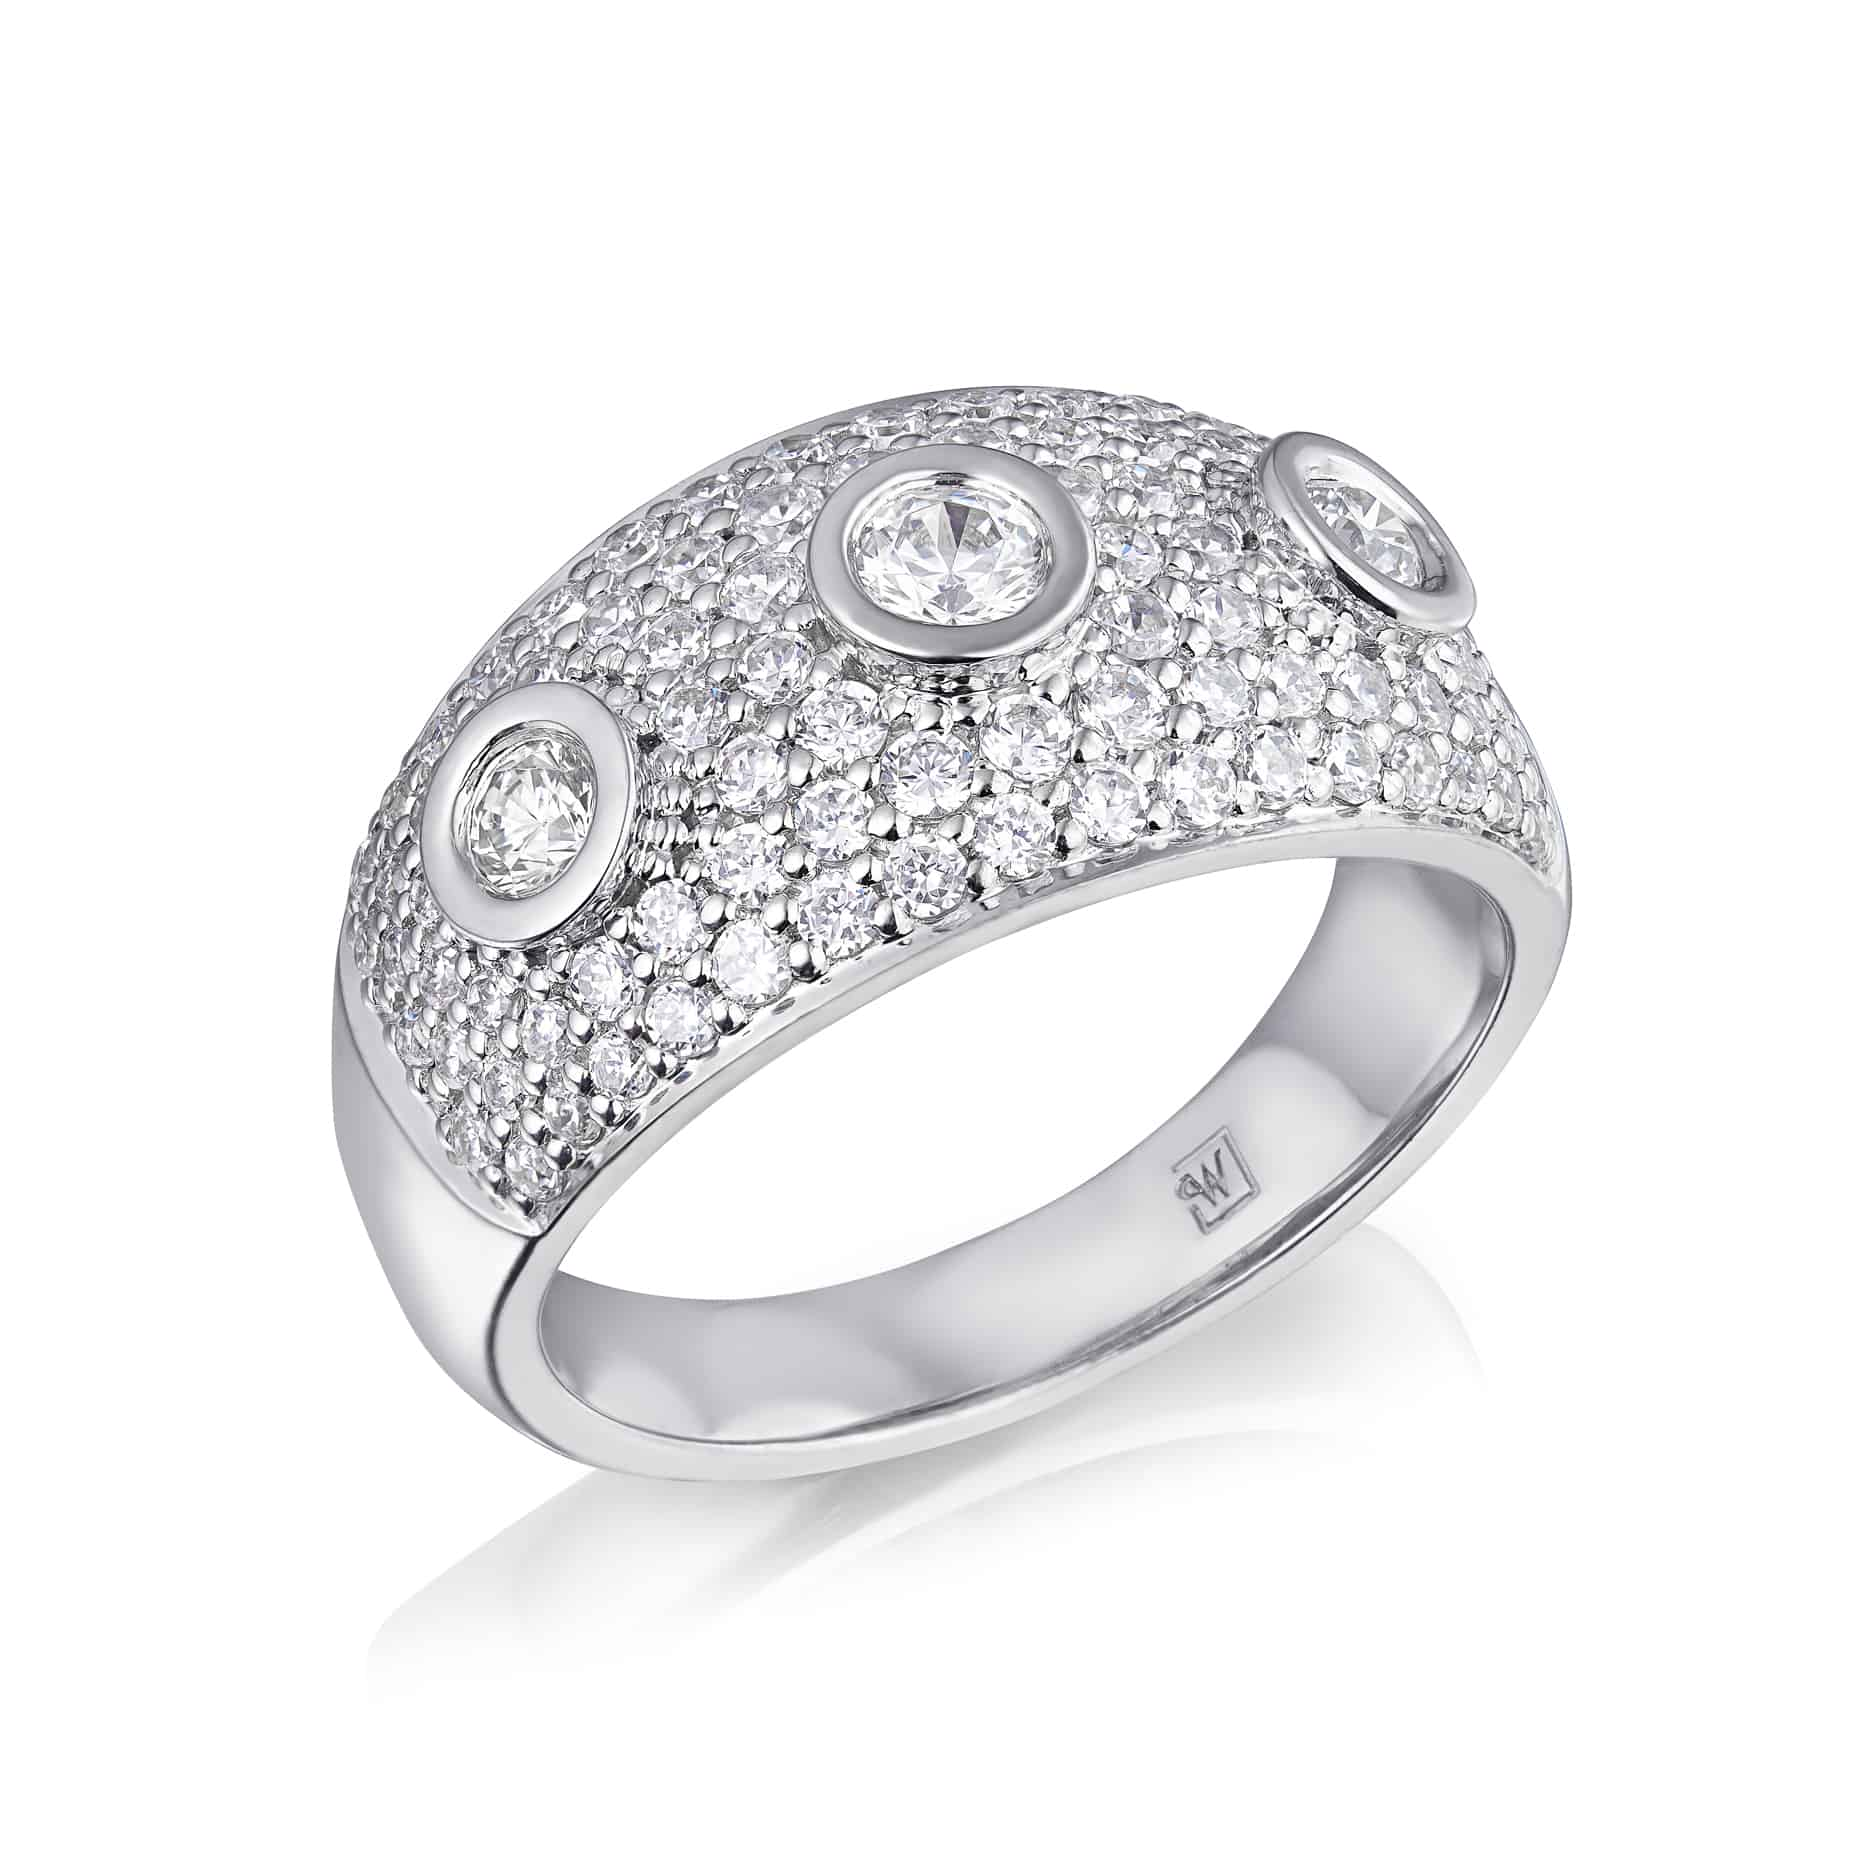 Three stone Pavee Set Diamond Ring